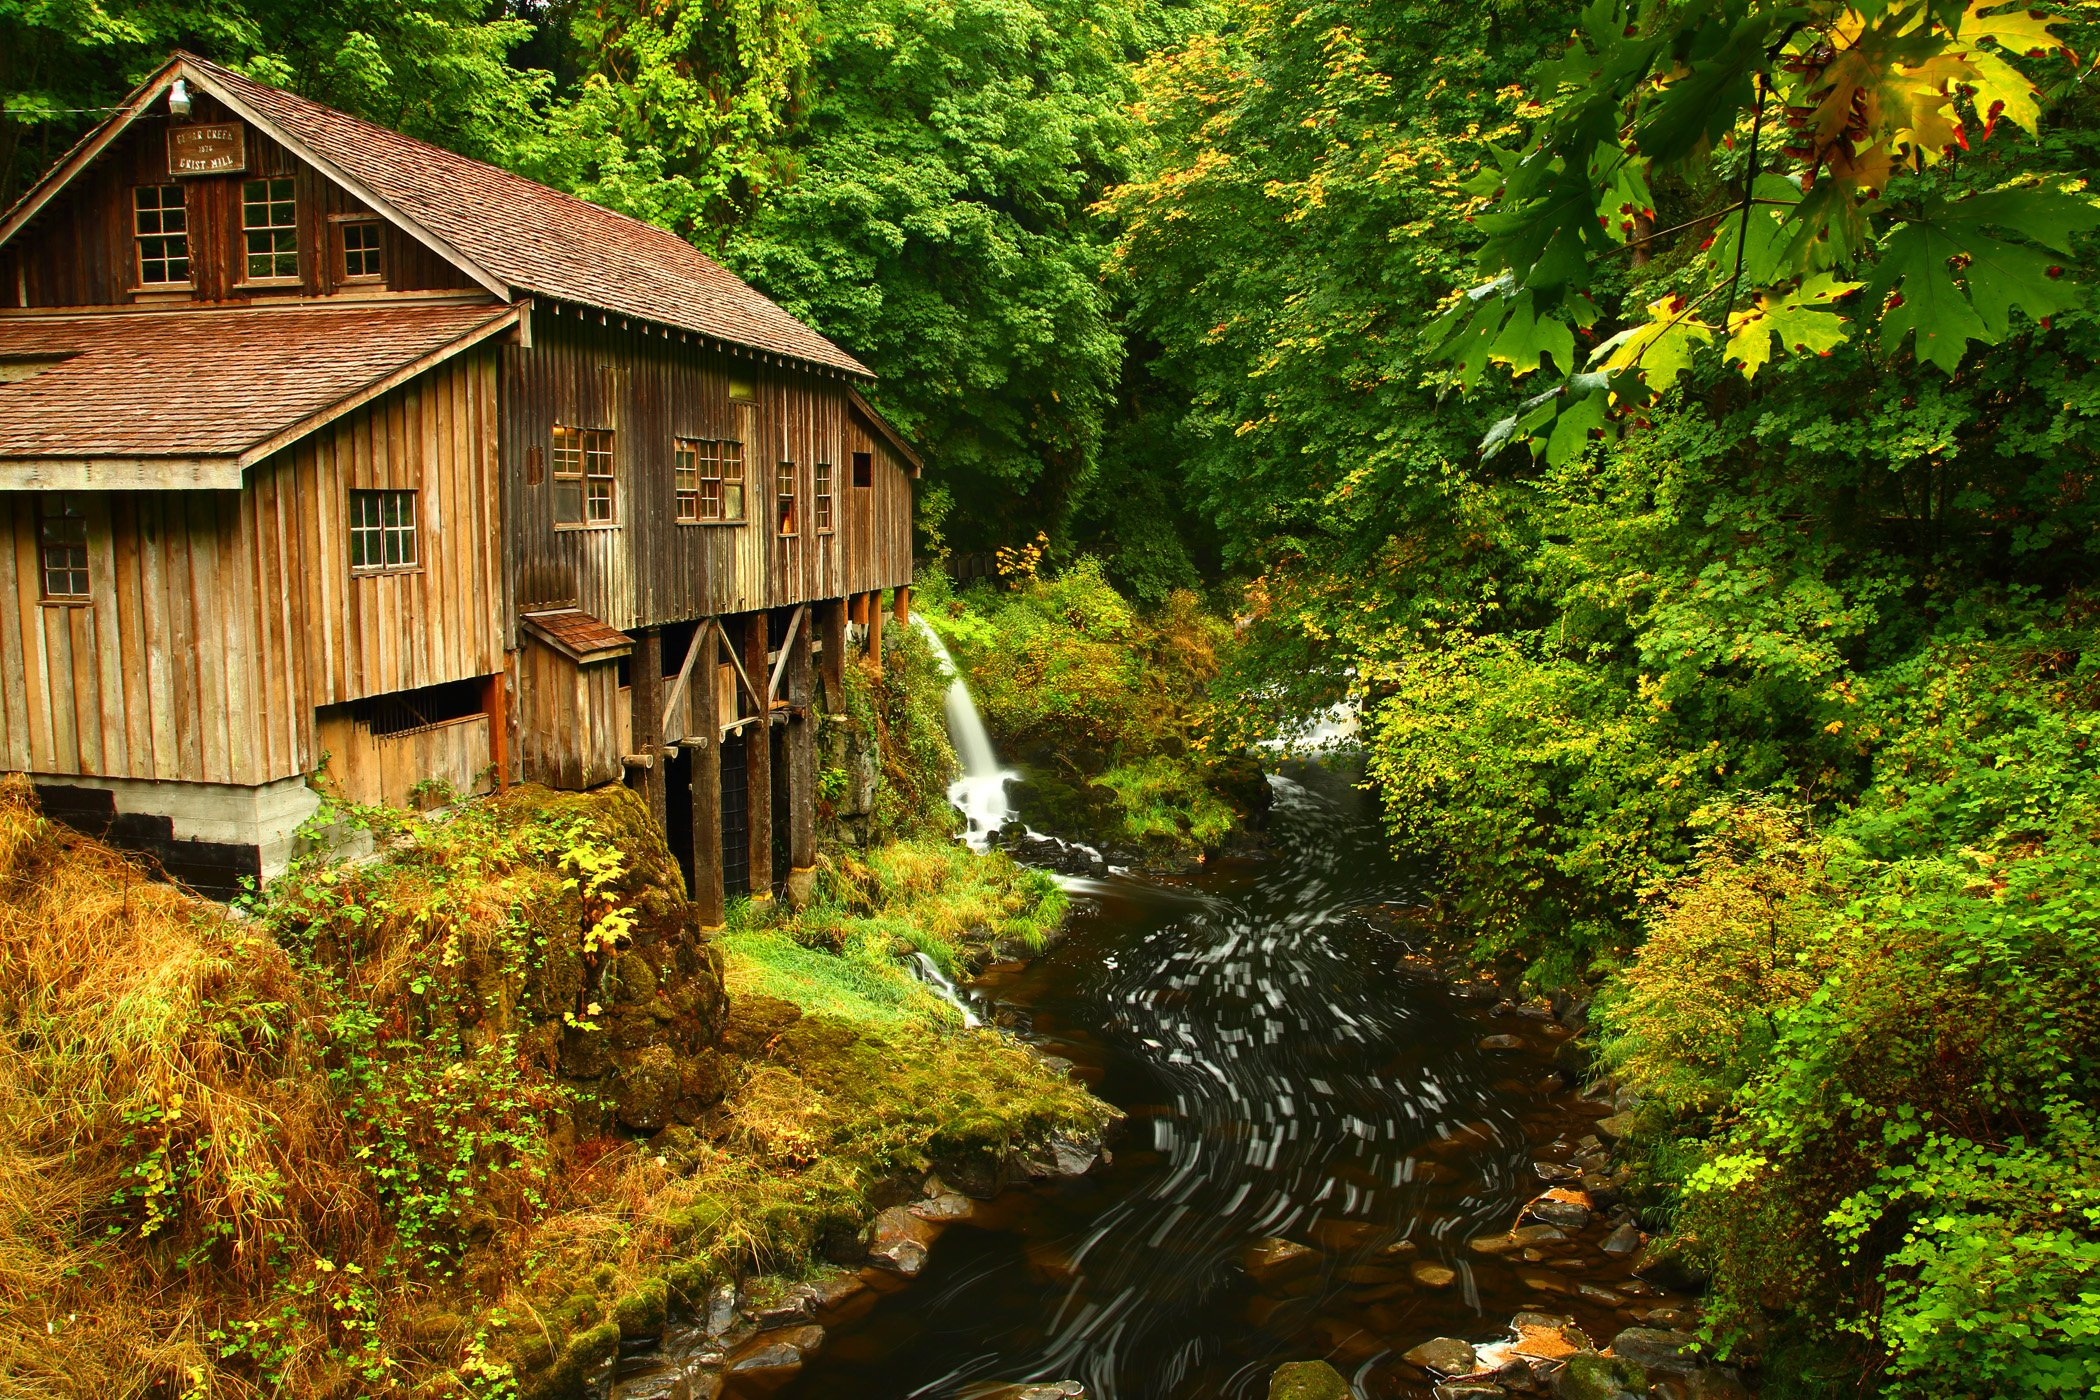 usa forests parks mount rainier washington stream nature river mill grist house forest autumn. Black Bedroom Furniture Sets. Home Design Ideas